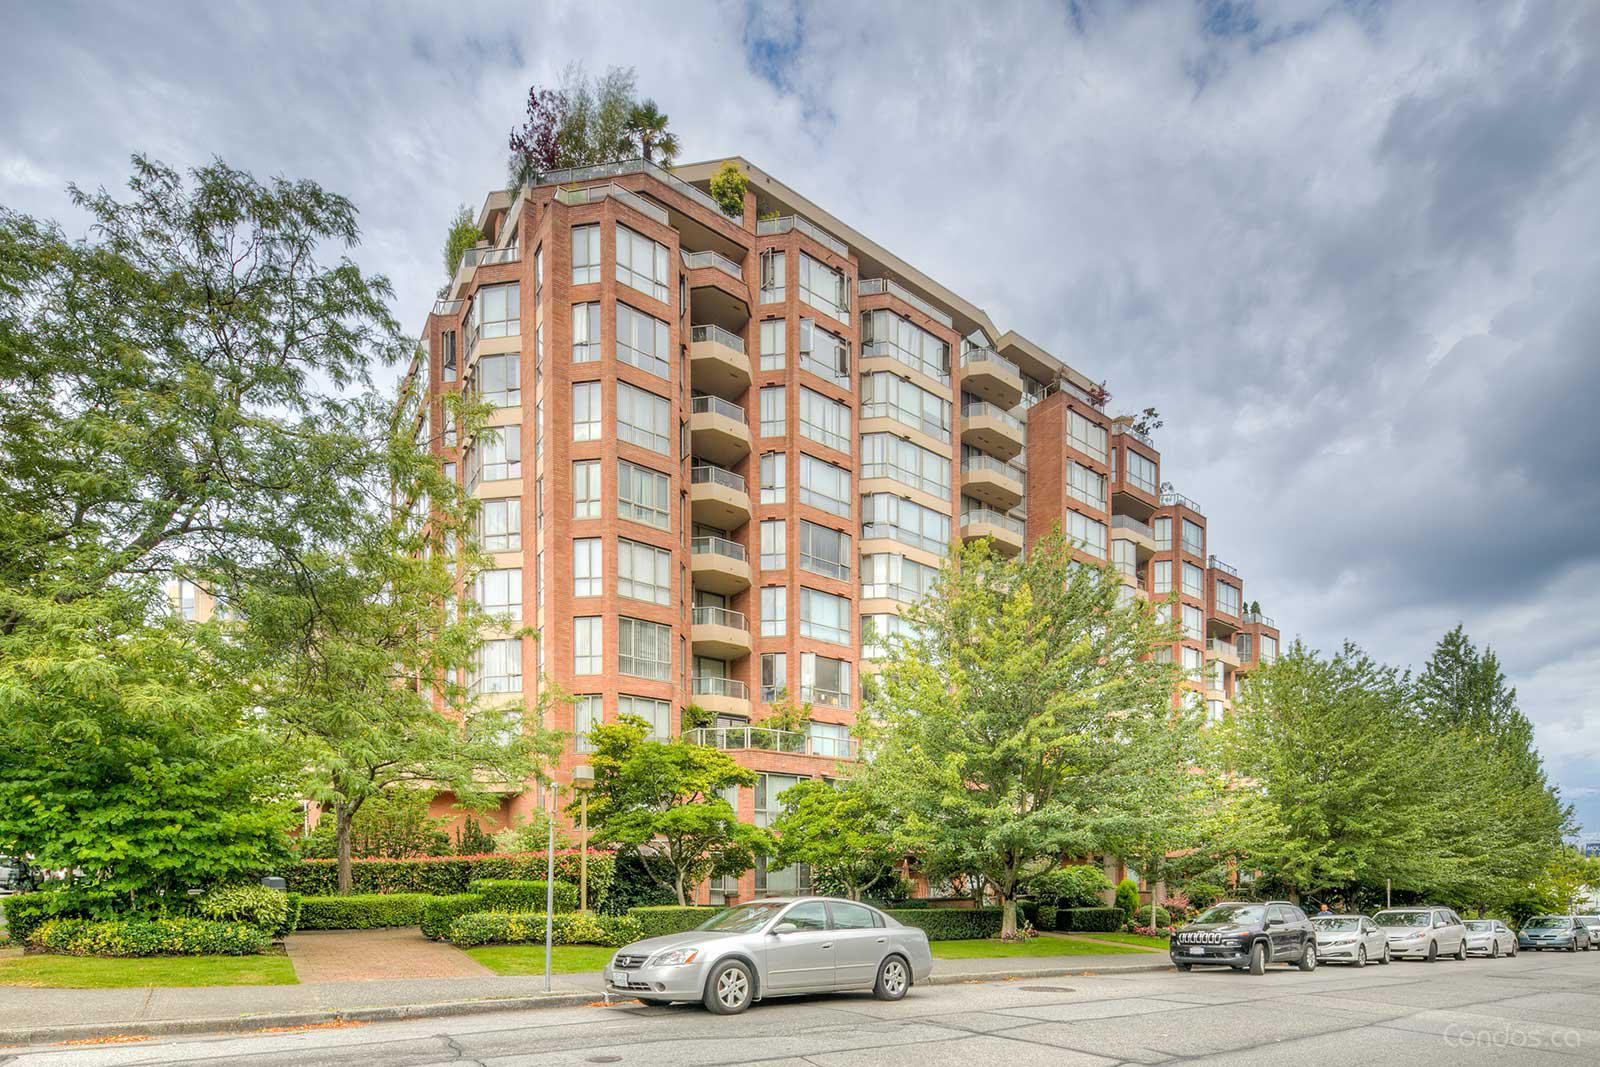 Meridian Cove at 2201 Pine St, Vancouver 1